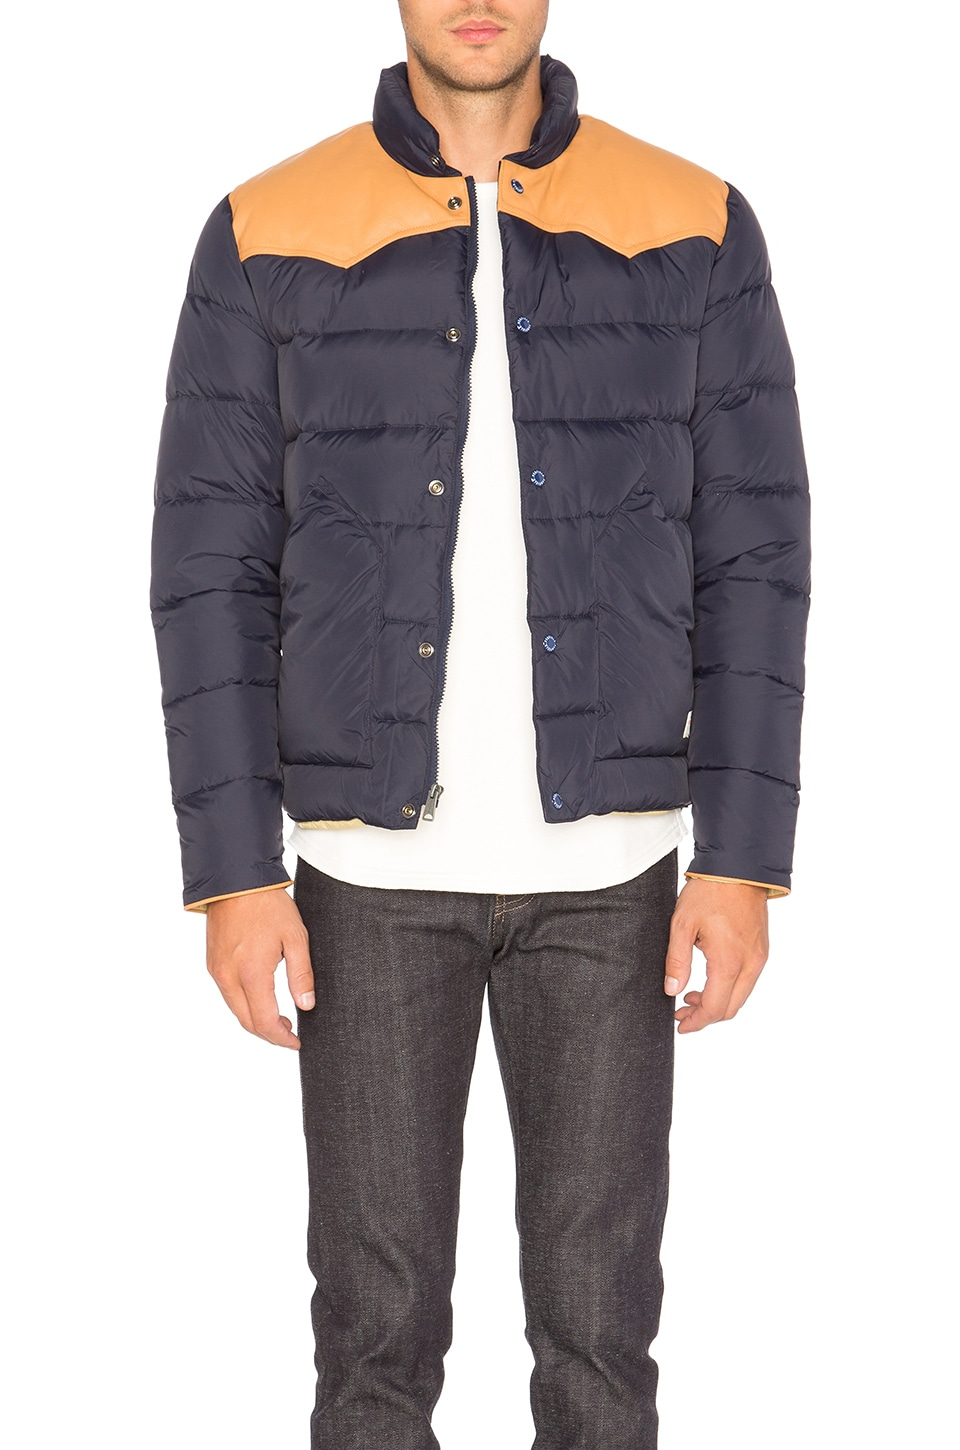 Pelam Leather Yoke Down Jacket by Penfield